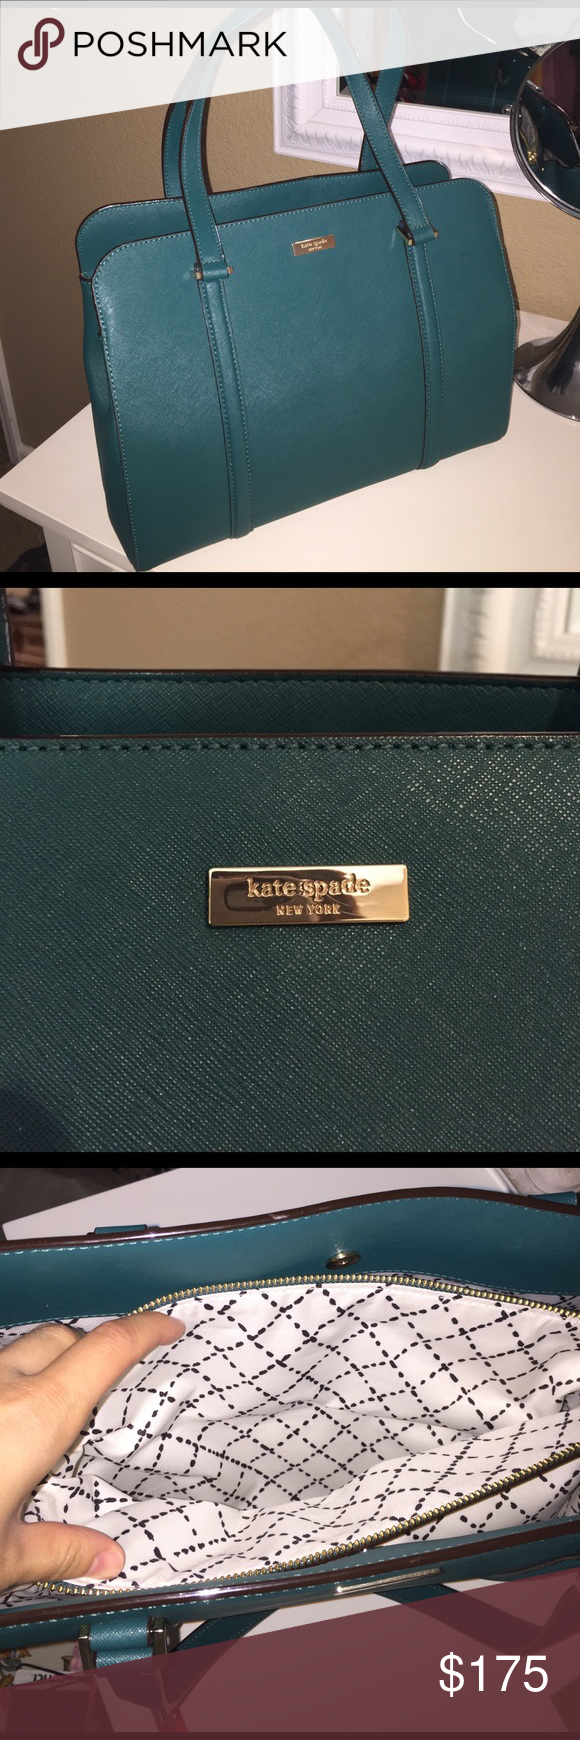 Beautiful, BARELY USED, Kate Spade purse! Medium size Kate Spade purse. Used 2-3 times! Lots of pockets inside! Amazing condition! kate spade Bags Totes